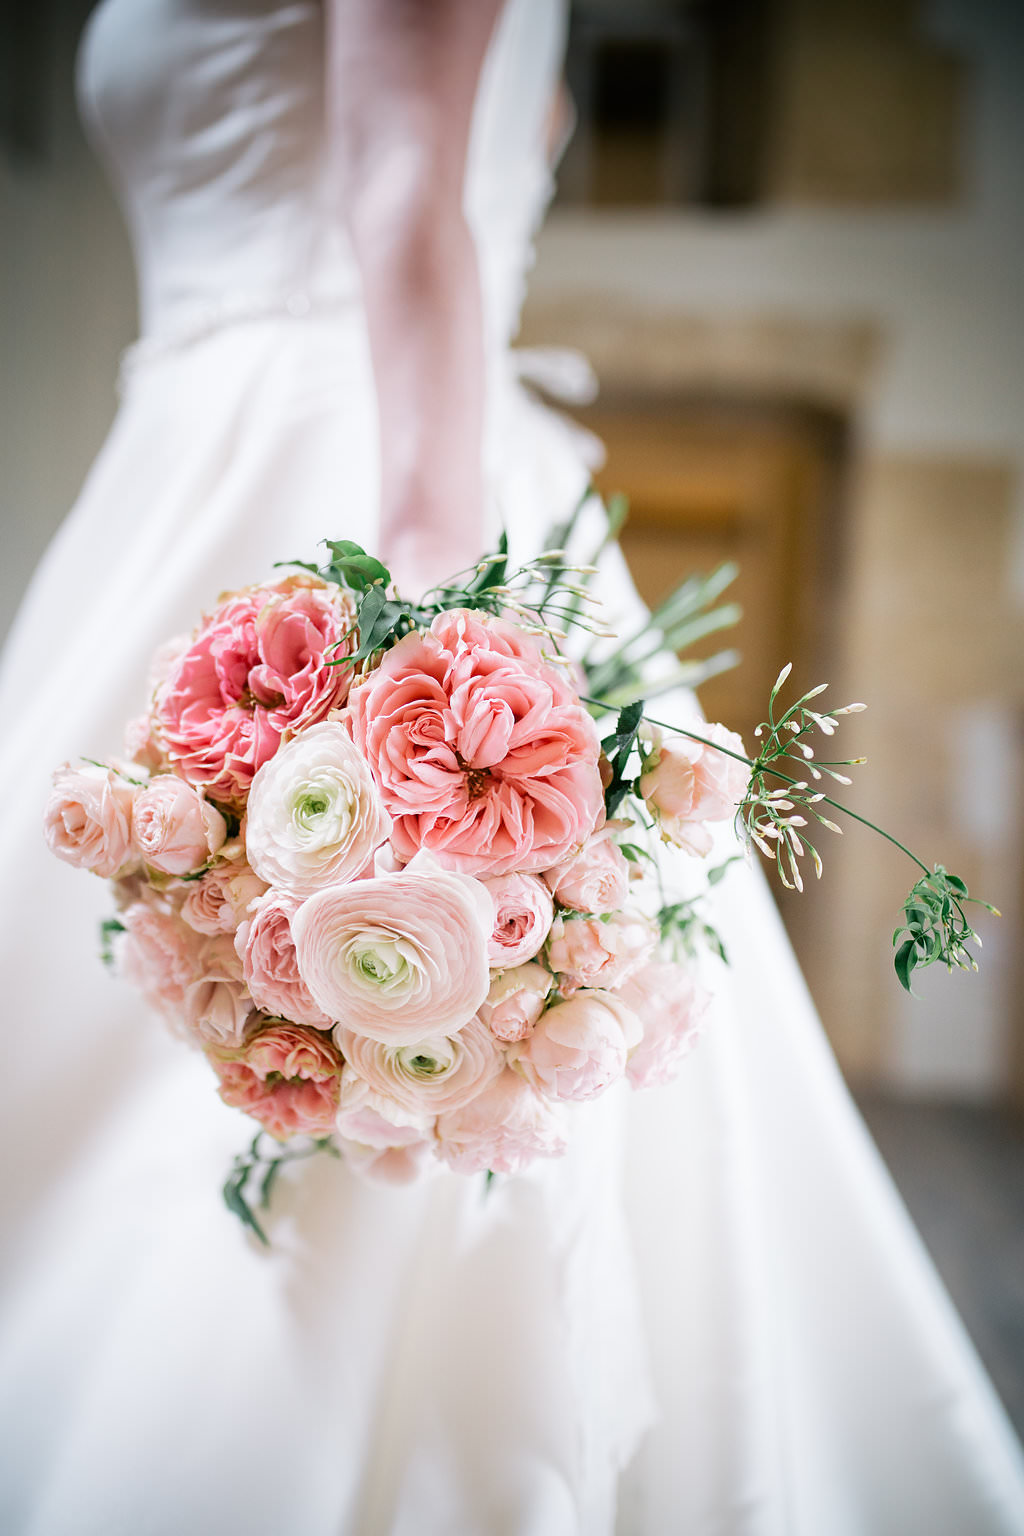 Bouquet Flowers Bride Bridal Pink Rose Ranunculus Peony Lapstone Barn Wedding Ideas Cotswolds Katie Hamilton Photography